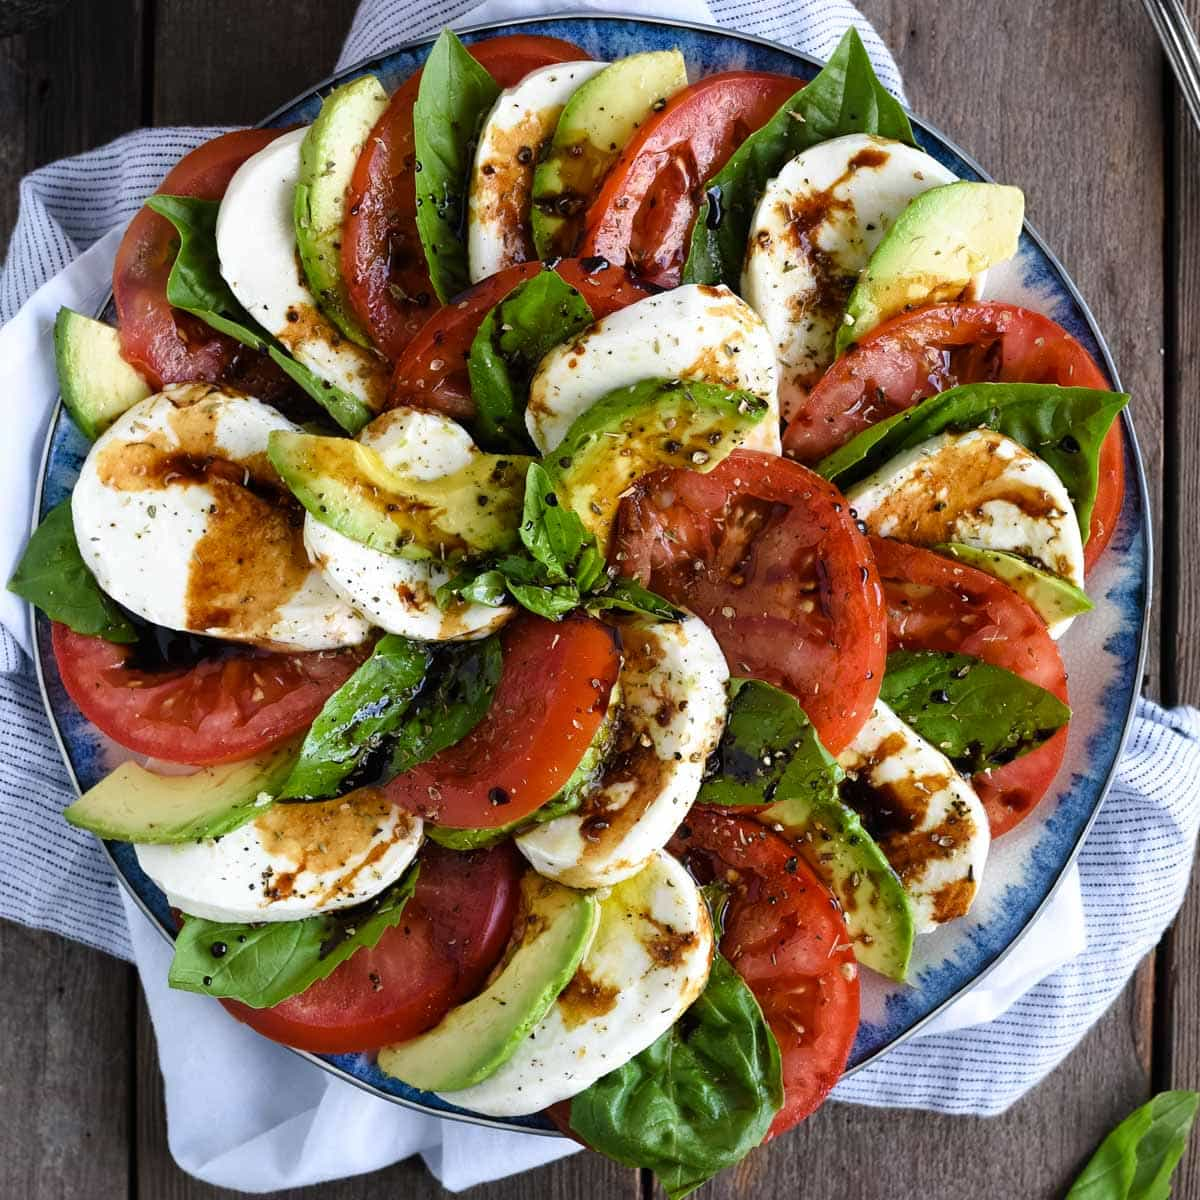 Avocado Caprese Salad With Balsamic Glaze Feasting Not Fasting